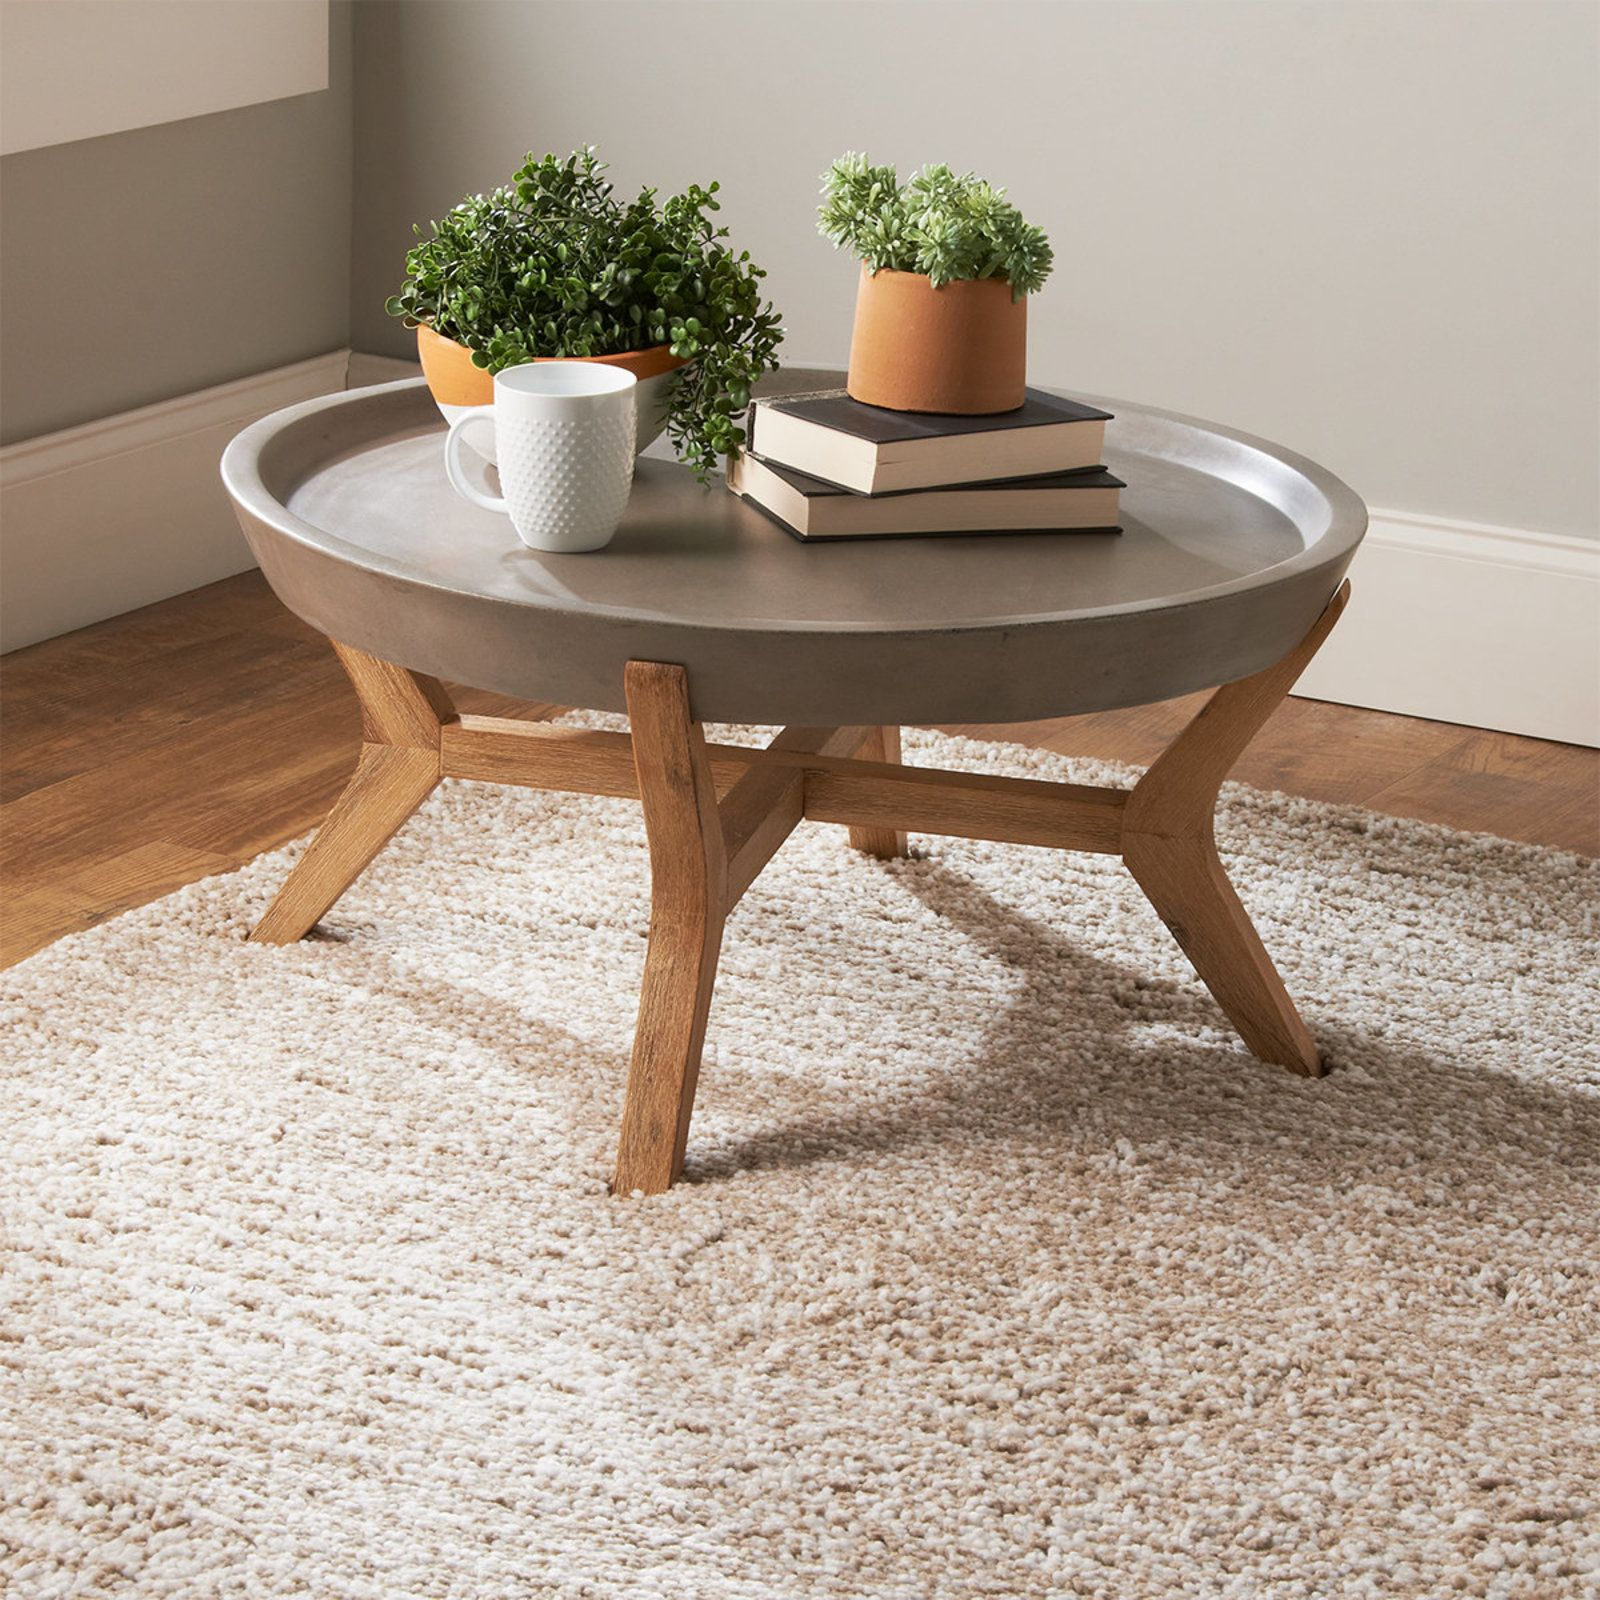 Round Concrete Tray Coffee Table In 2020 Round Wood Coffee Table